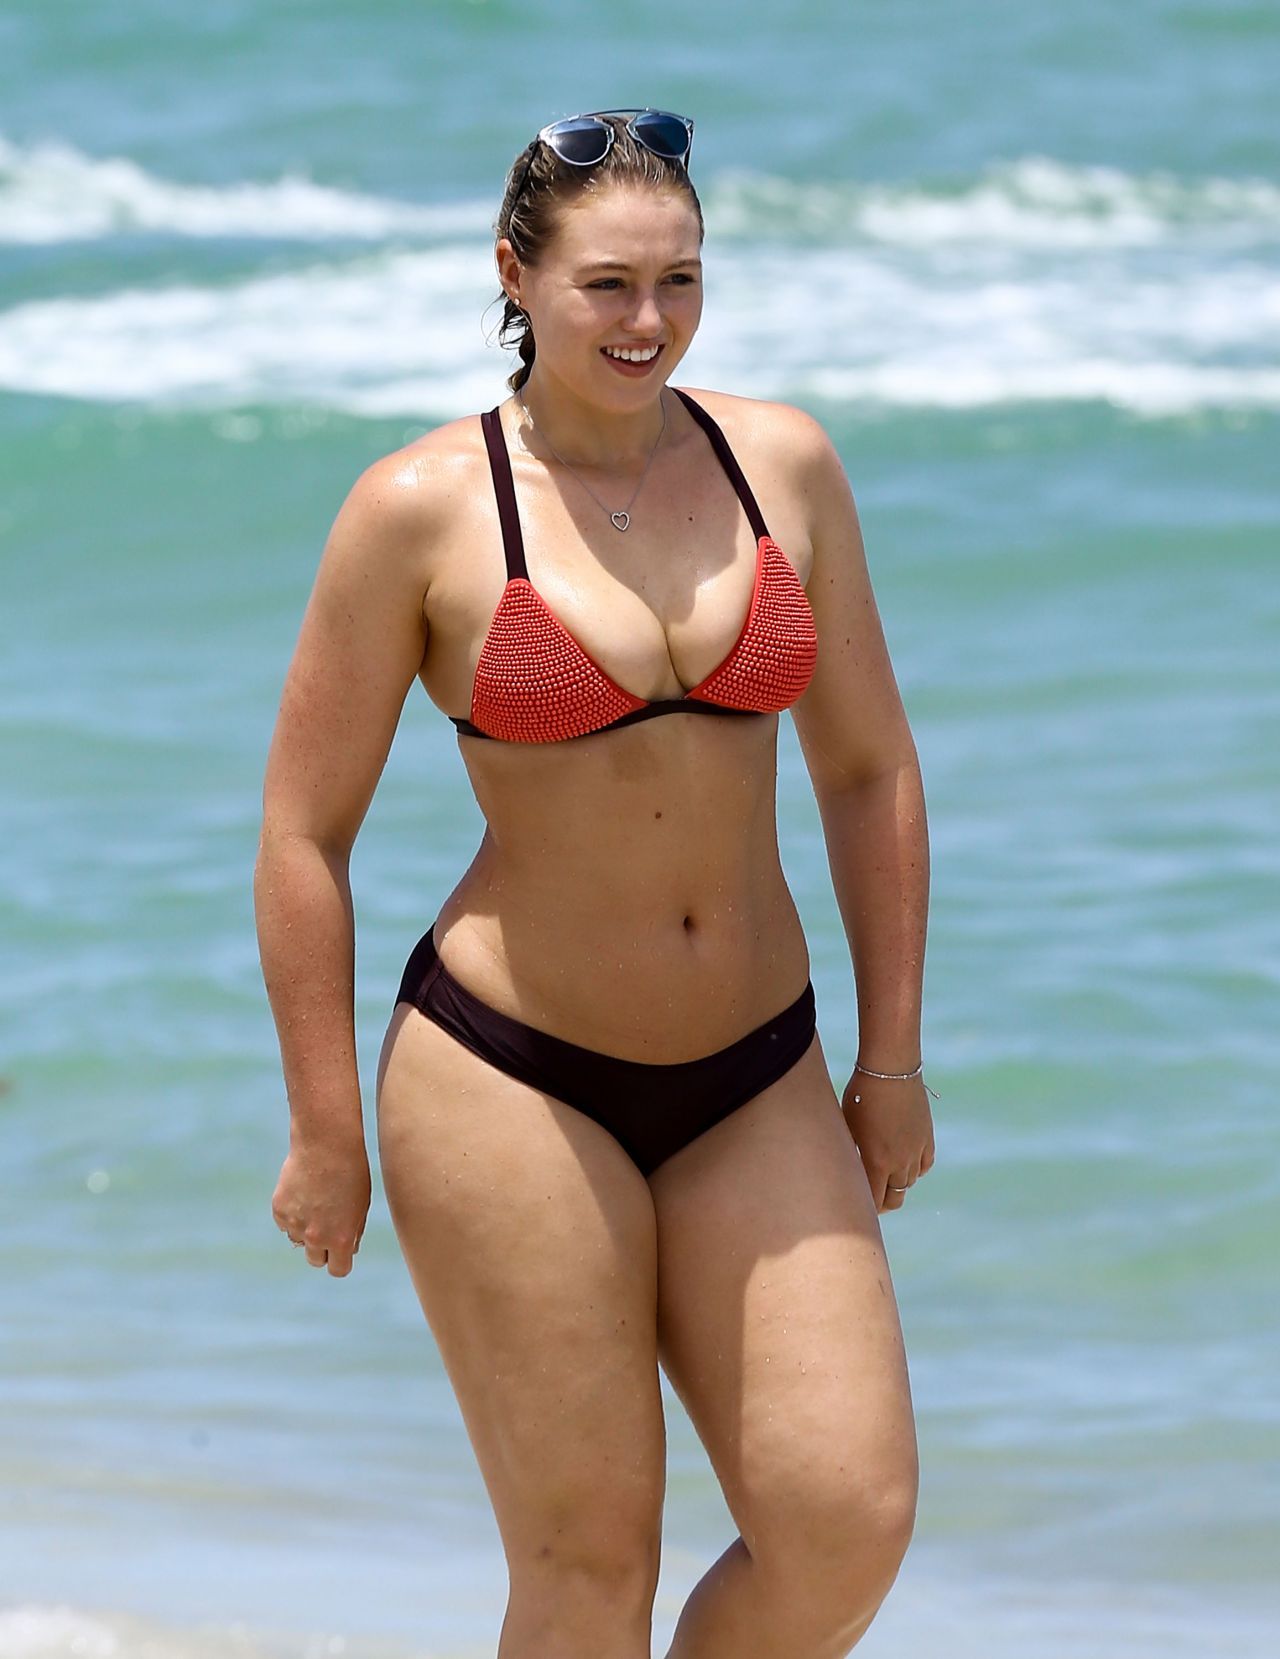 Bikini Iskra Lawrence nudes (33 photos), Sexy, Hot, Instagram, bra 2015